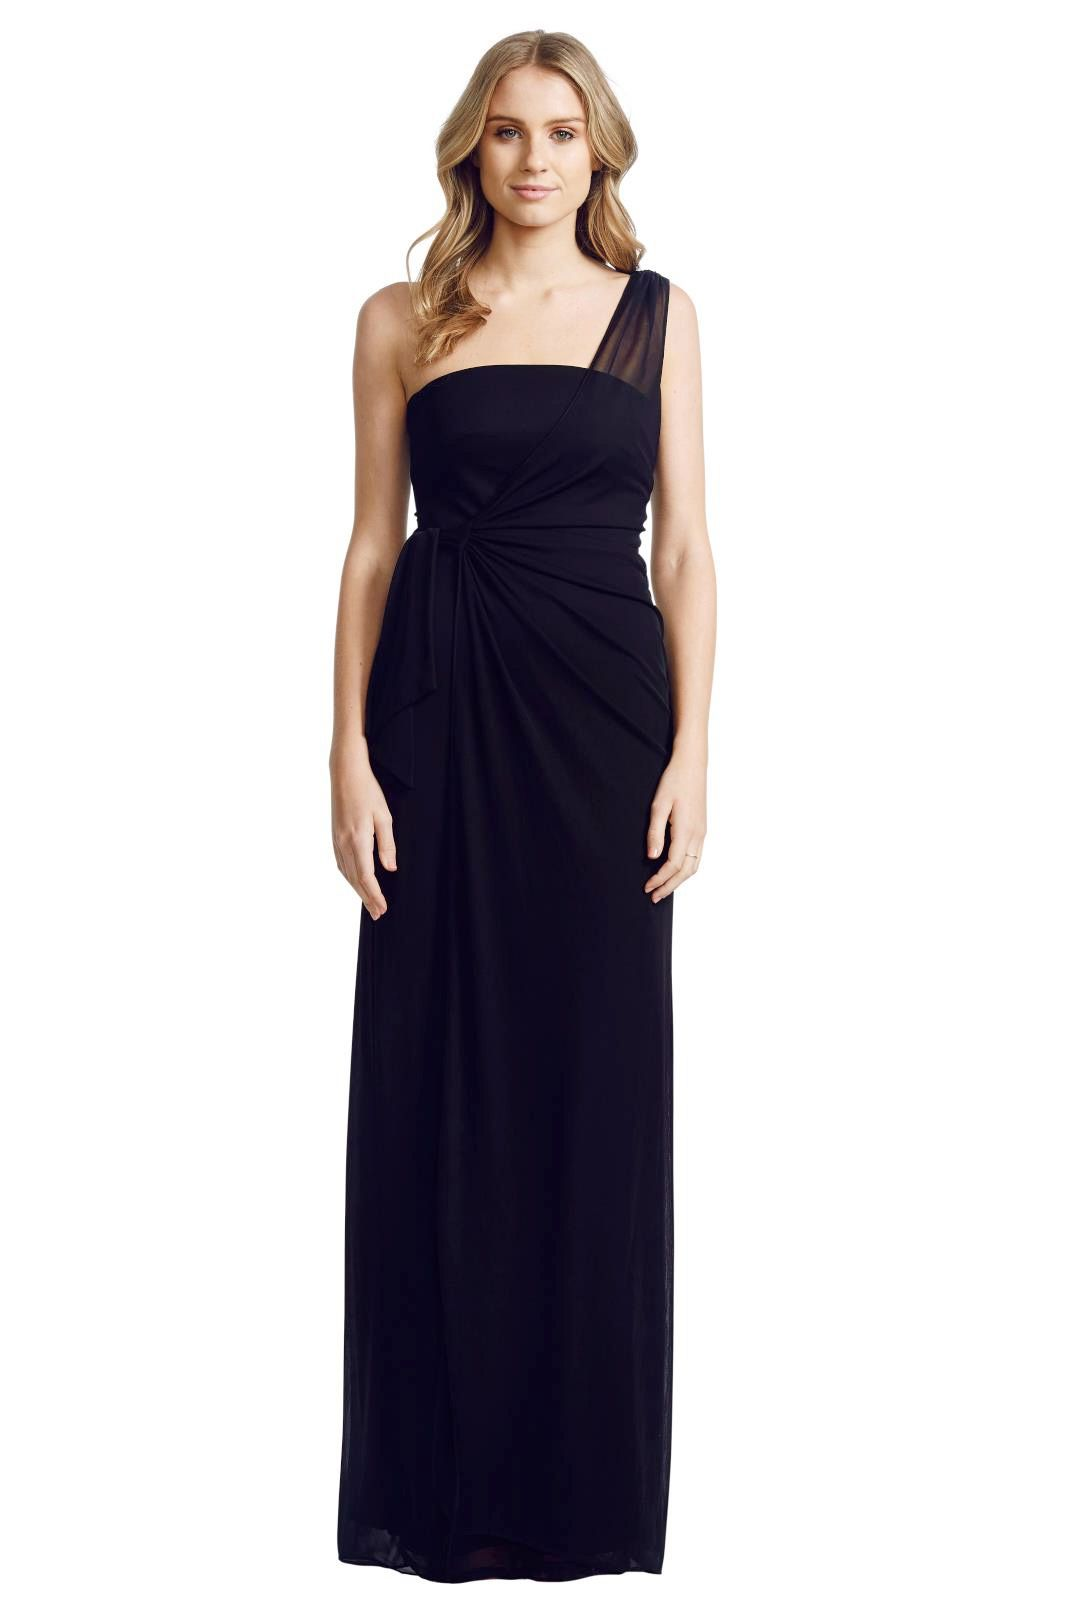 Matthew Eager - One Shoulder Gown - Black - Front